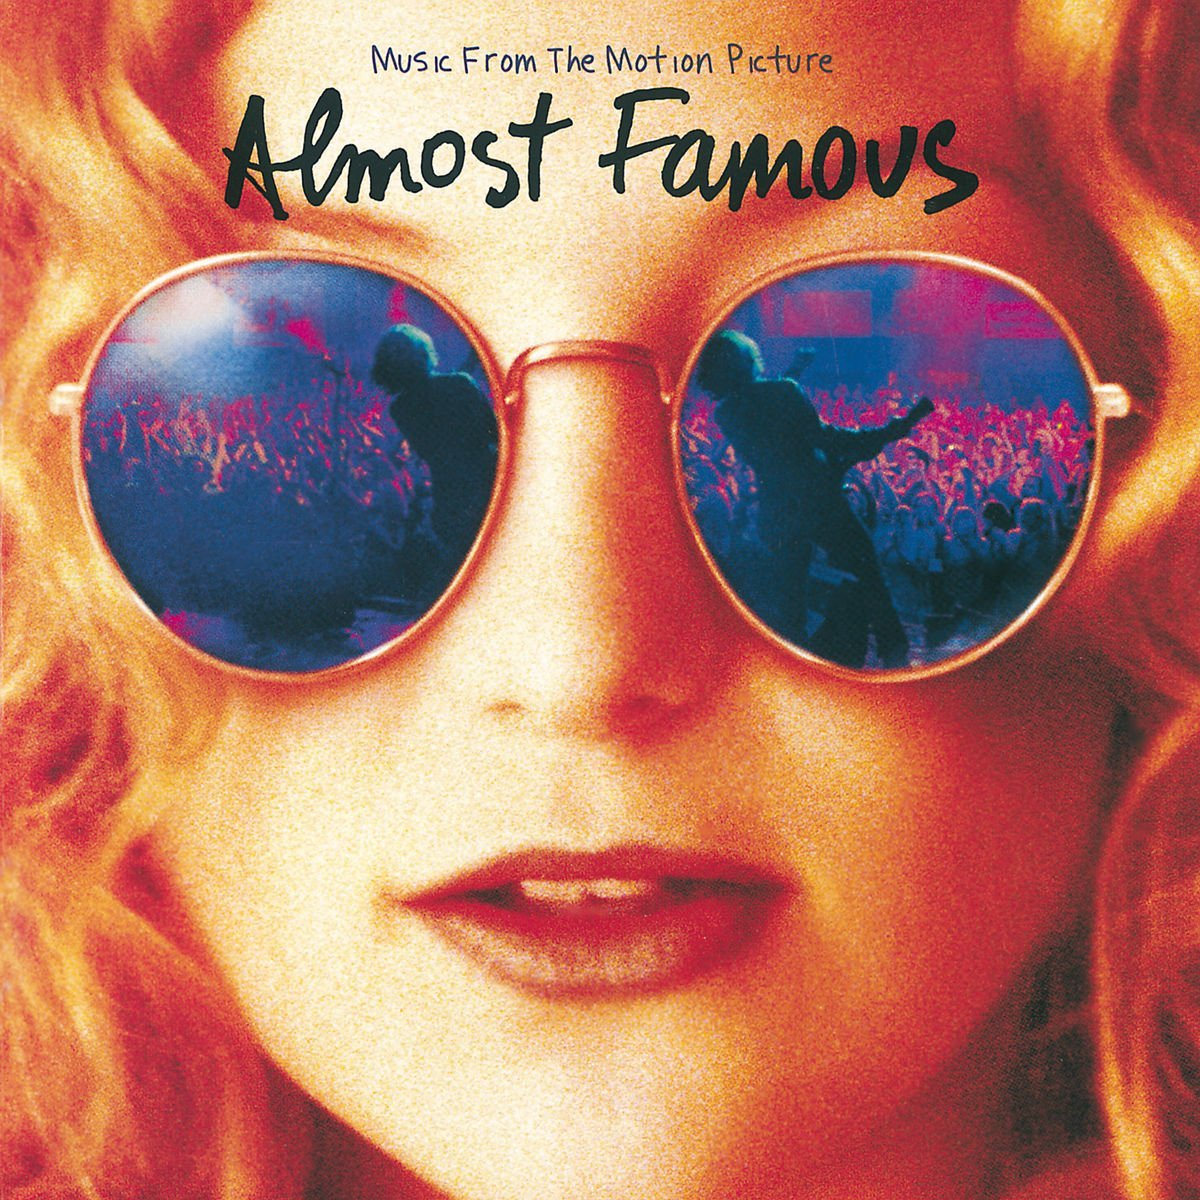 Almost Famous - Favorite Movie of all Time